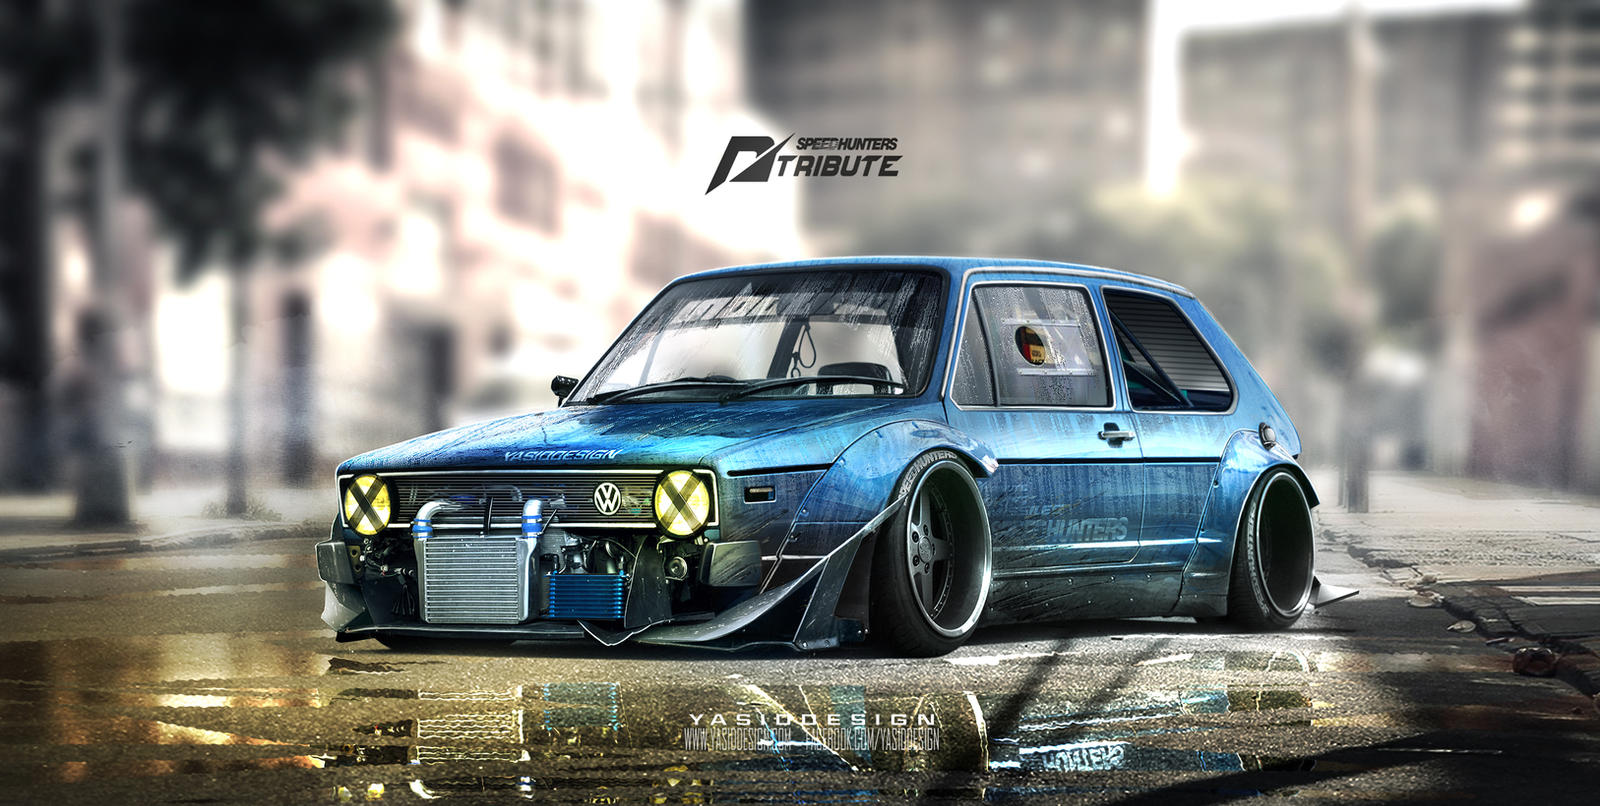 Speedhunters Golf Mk1 Nfs Tribute By Yasiddesign On